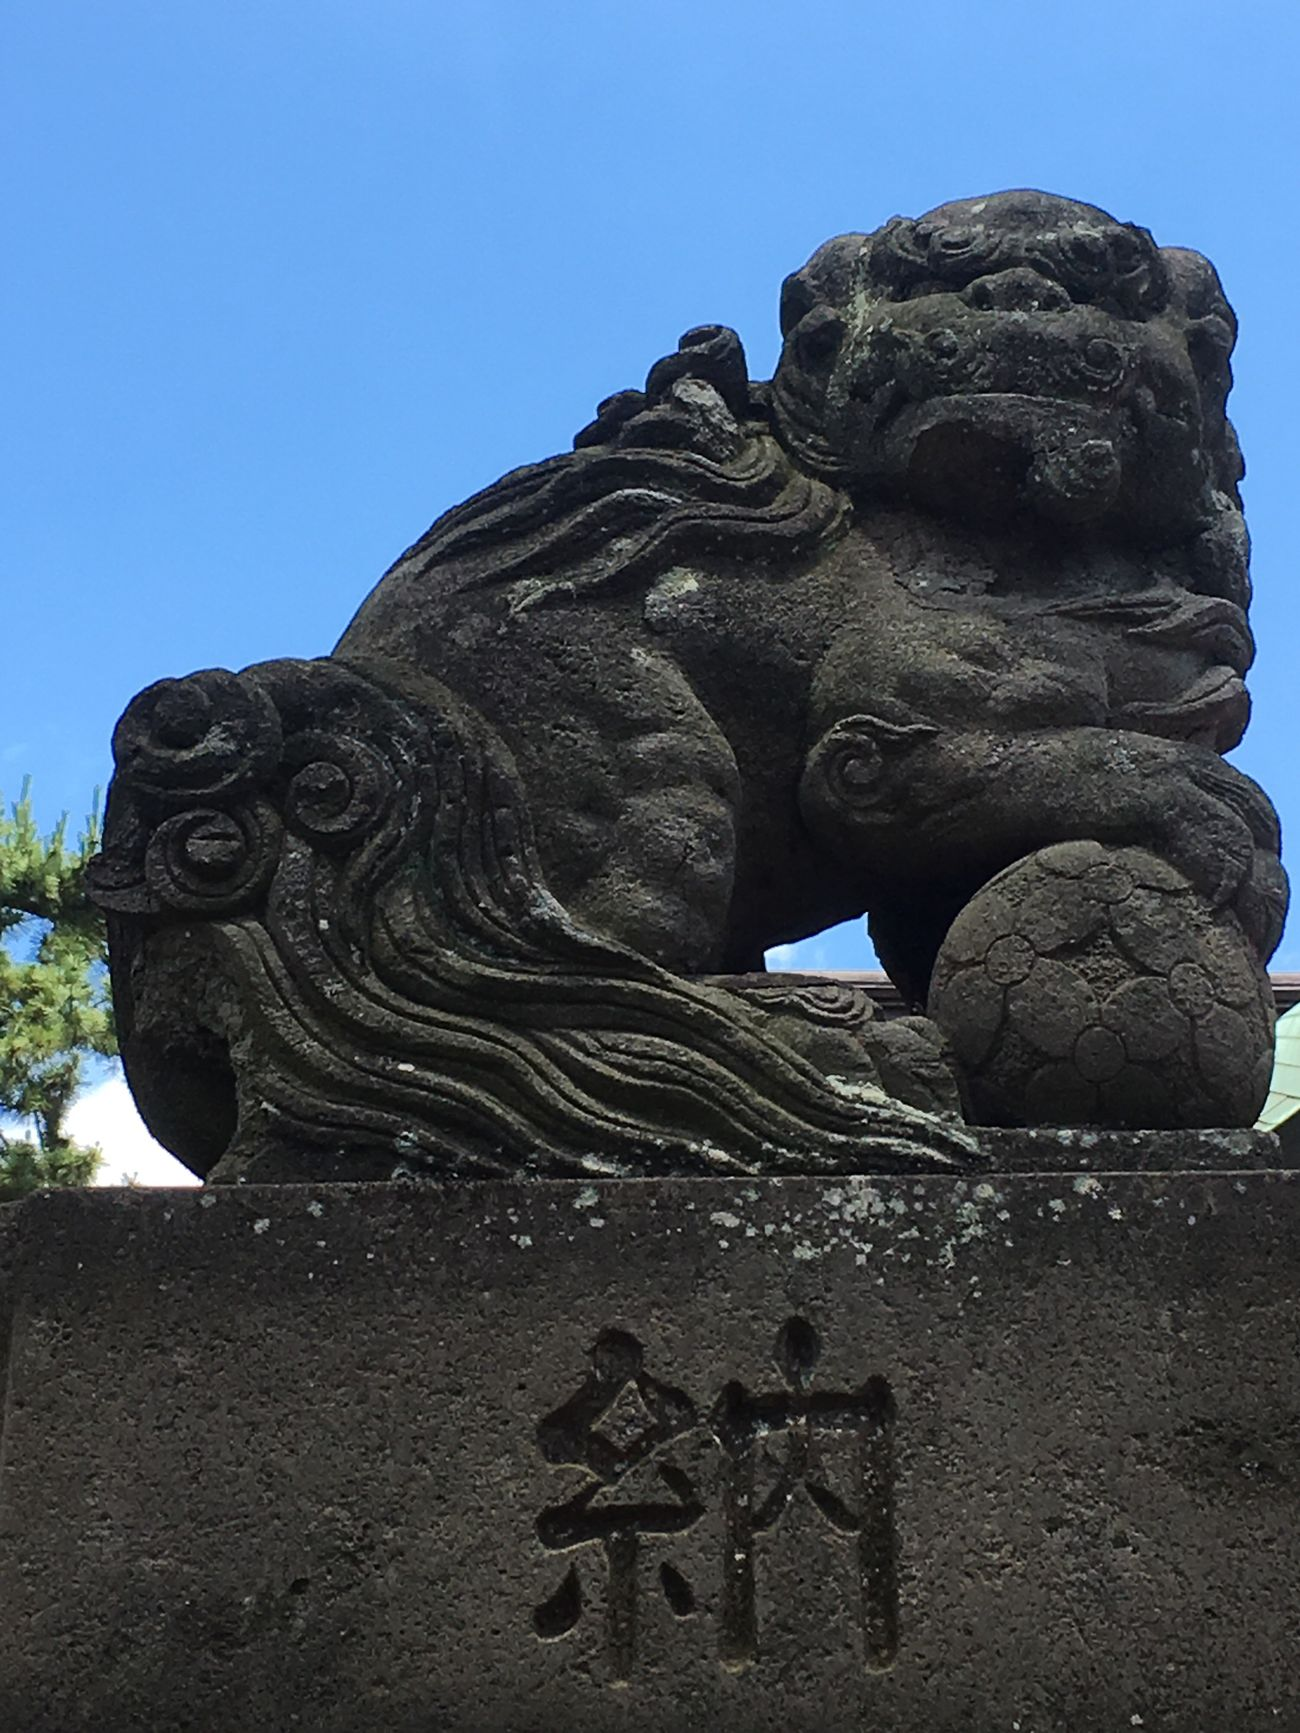 No People Shinto Shinto Shrine Nature Grounds Guardian Lion-dog At Shinto Shrine Shiny Day Early Summer June 2017 Tokyo Tokyo,Japan Underthesun Solemnity 東京 神社 境内 初夏 太陽の下 狛犬